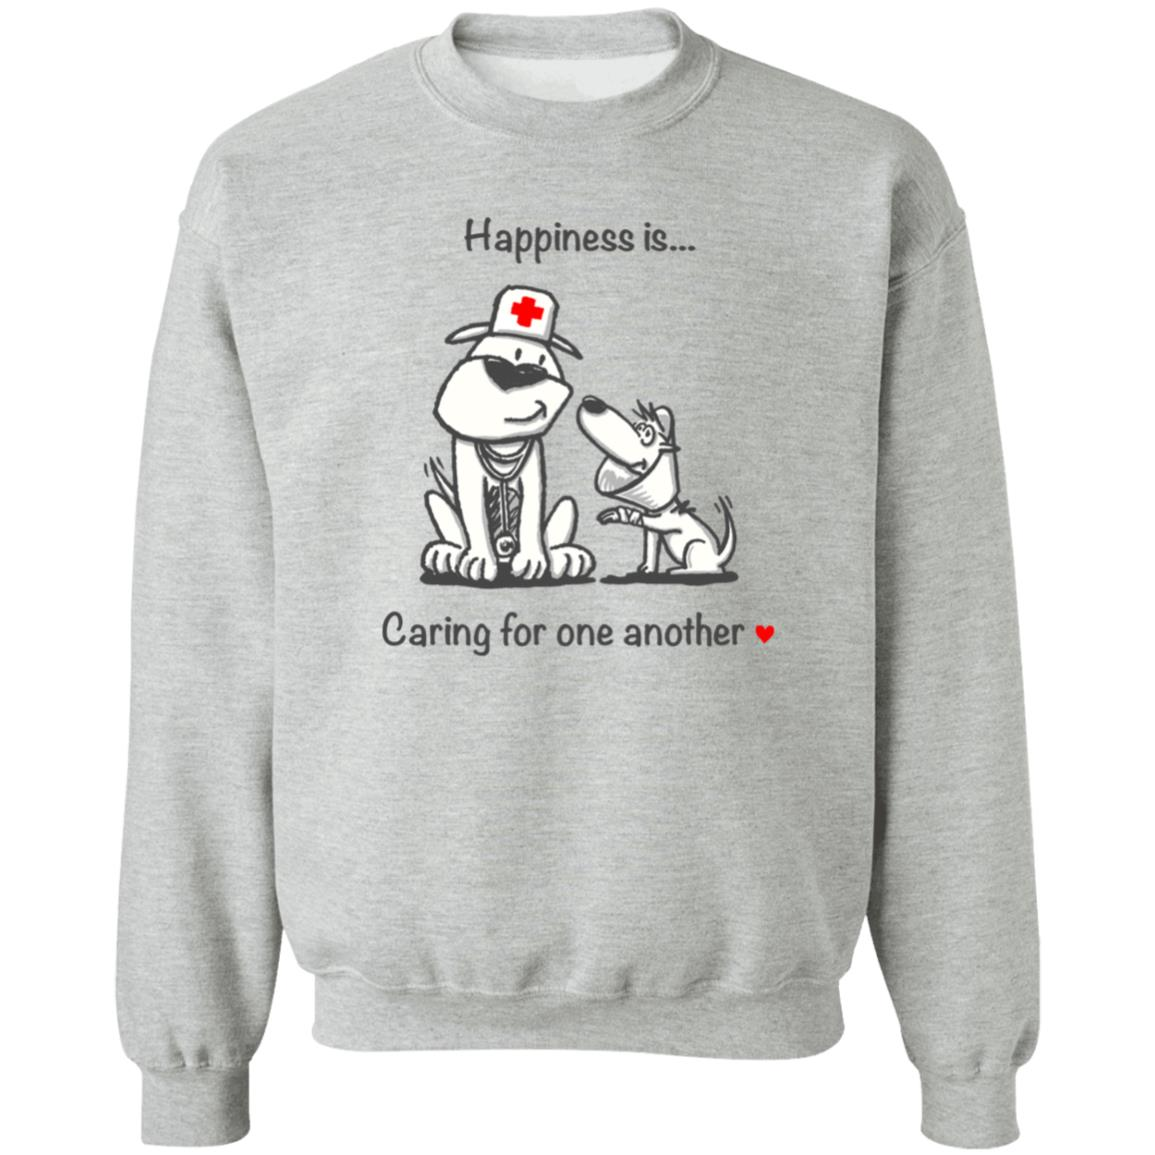 Happiness Is Caring For One Another Grey Sweatshirt 🐾  Deal Up To 25% Off!